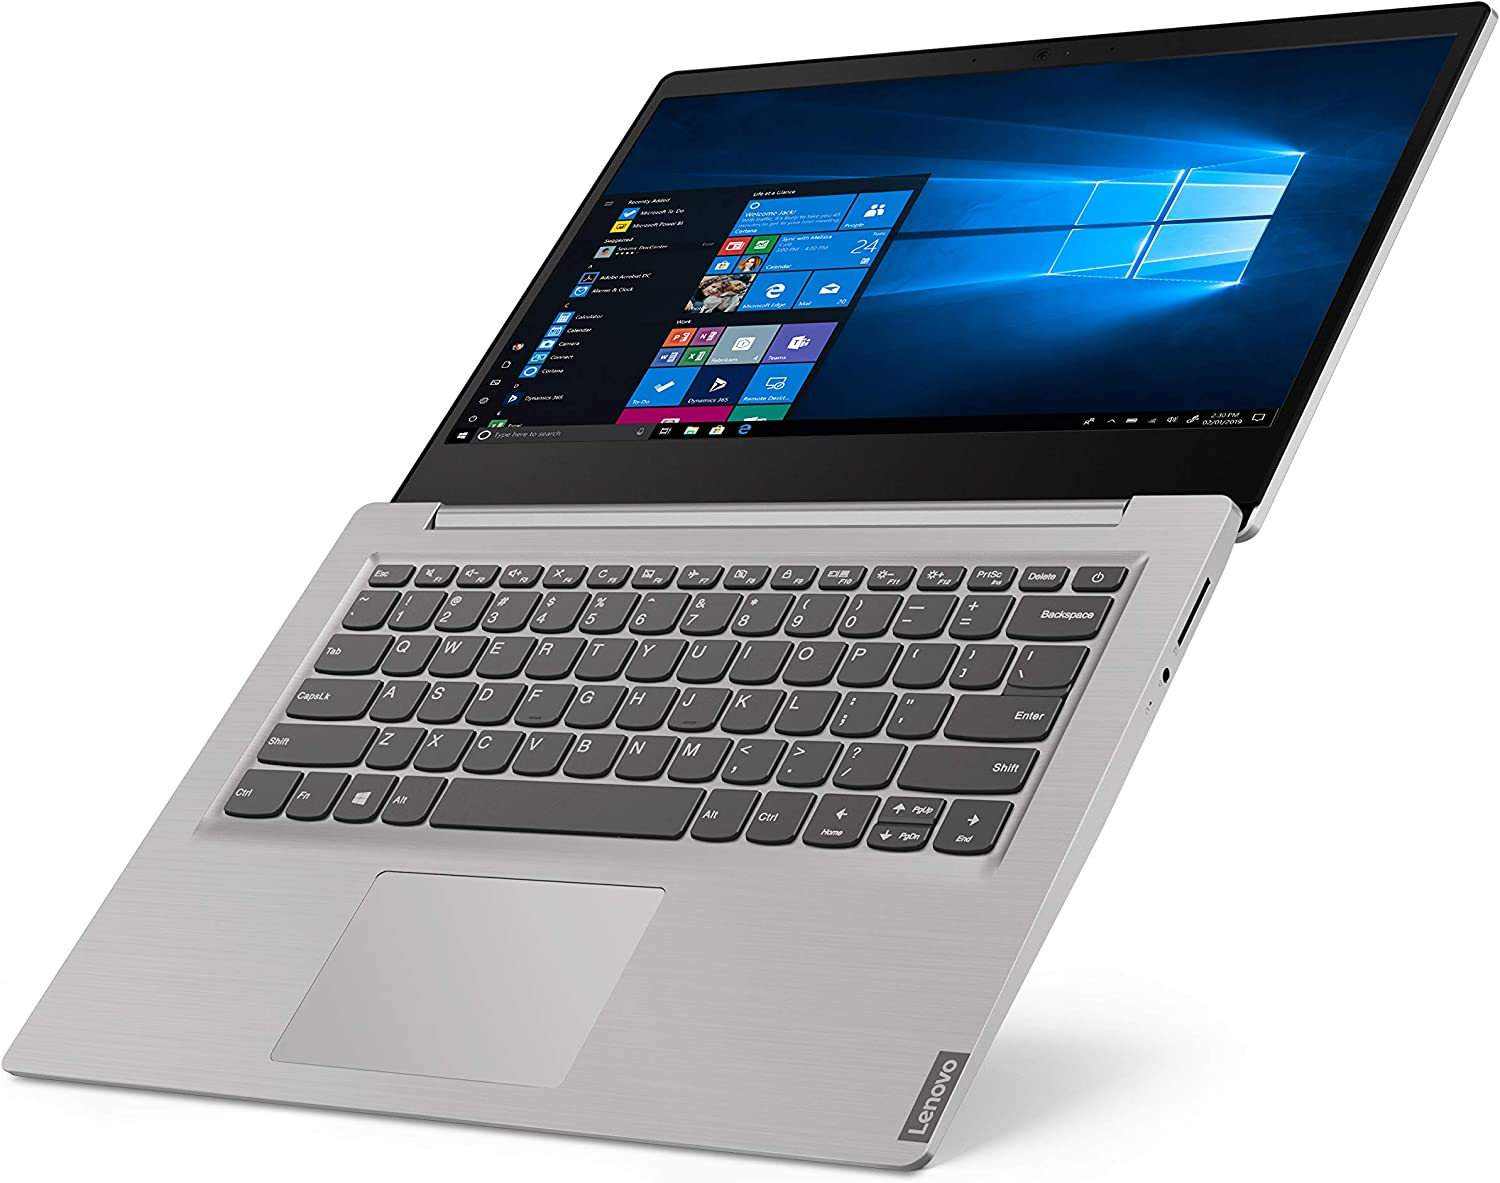 Lenovo Ideapad 14inch Laptop, Intel Pentium Gold 5405U Dual Core 2.3GHz Processor, 4GB RAM, 128GB SSD Storage, Intel UHD Graphics, WiFi, Bluetooth, HDMI, Windows 10 (Renewed)